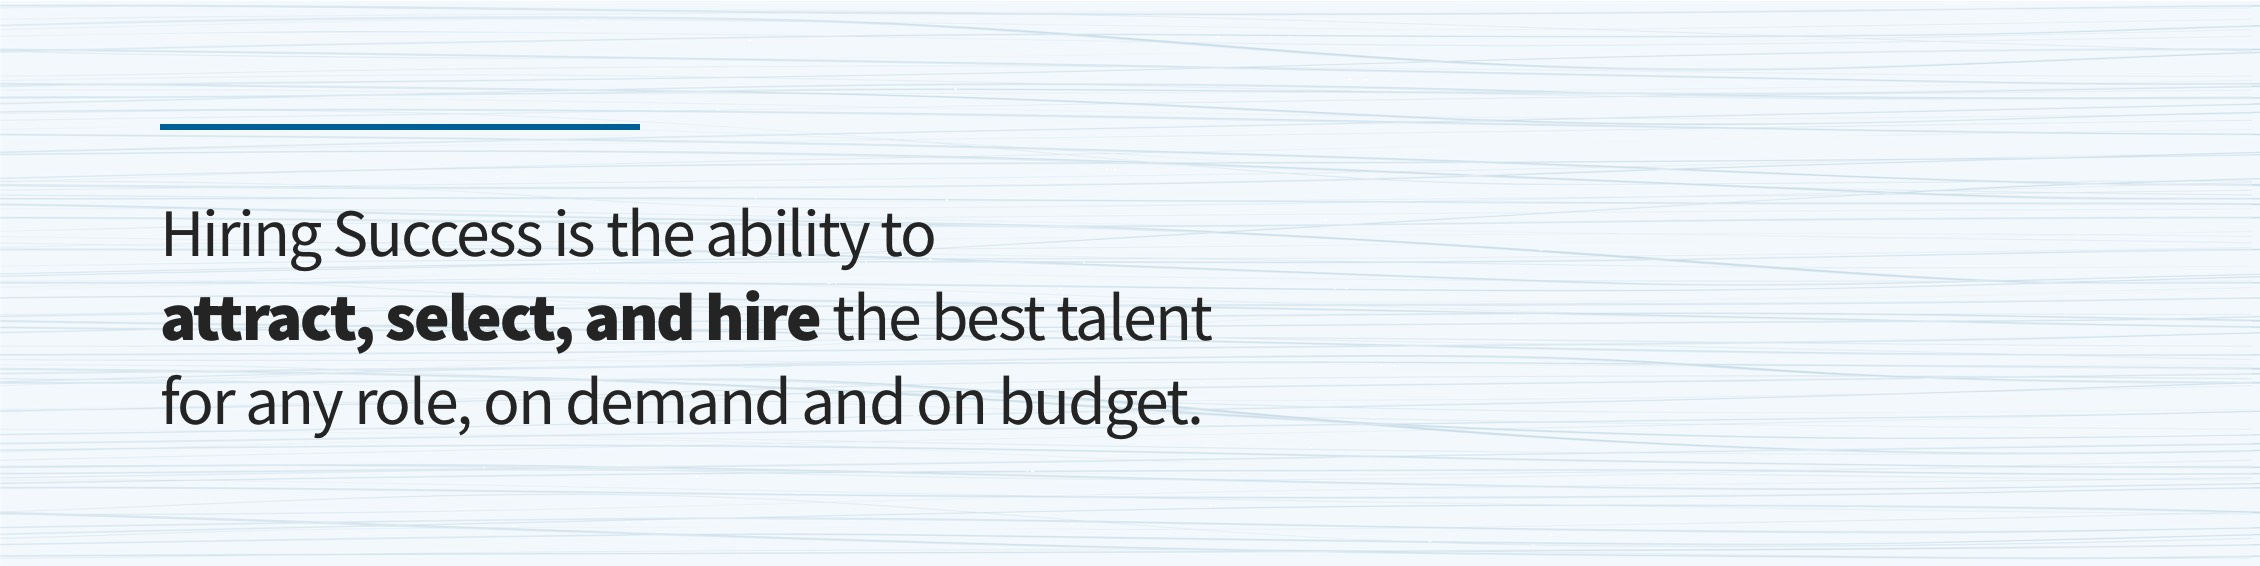 Hiring Success is the ability to attract, select, and hire the best talent for any role, one demand and on budget.